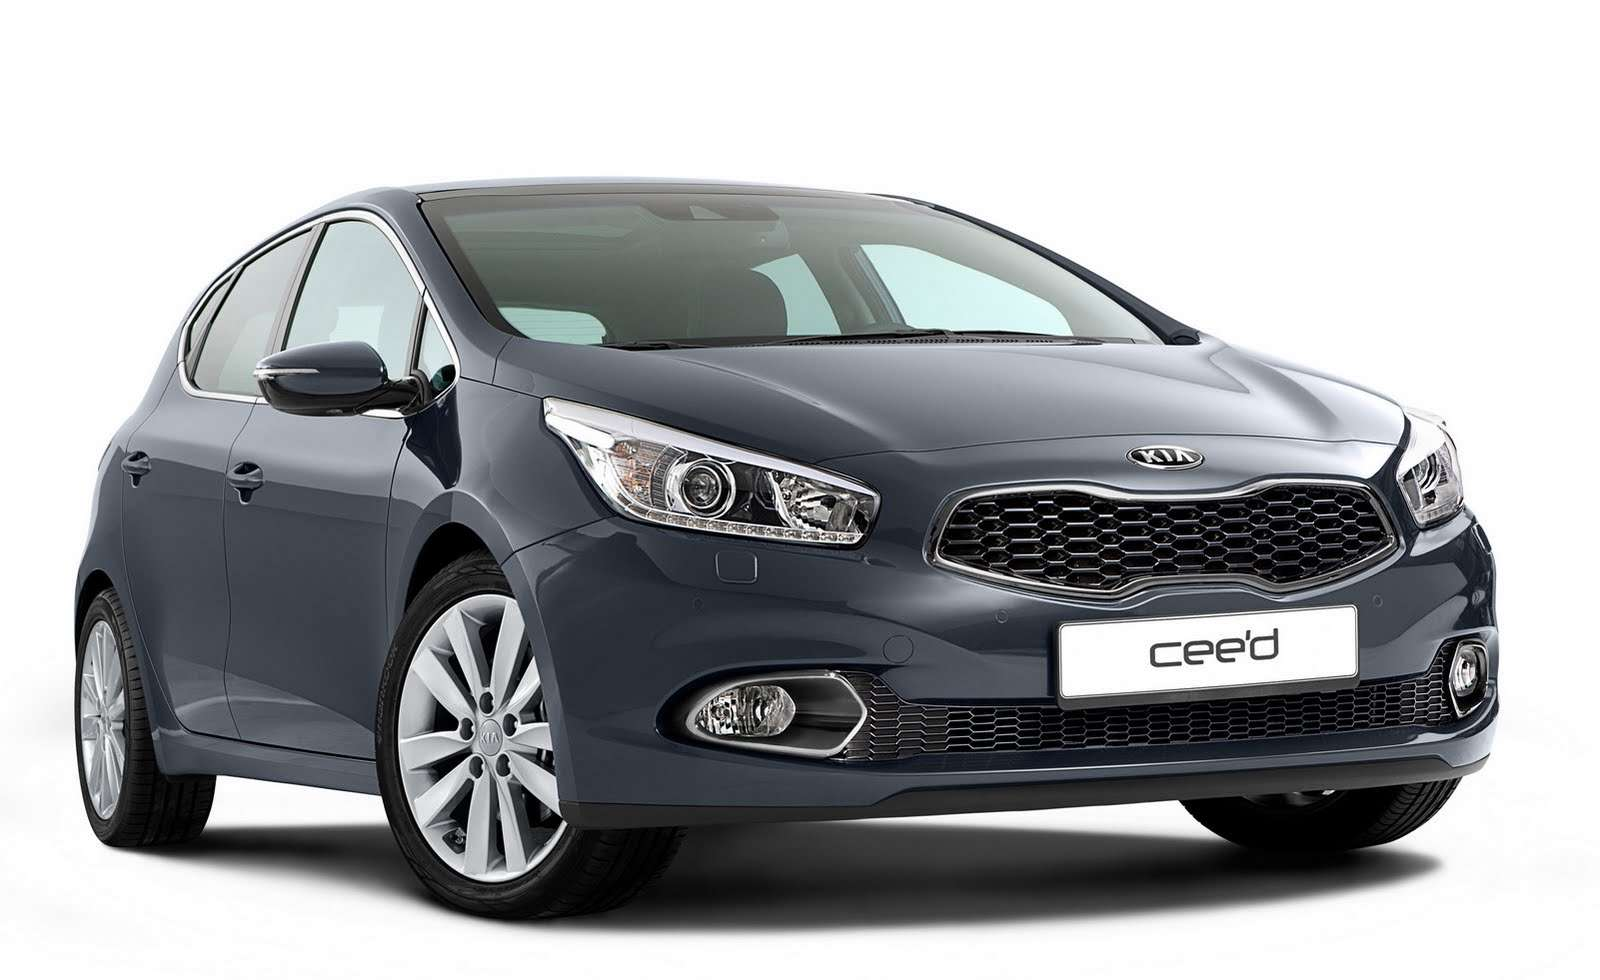 Kia ceed first photo officcial styczen 2012